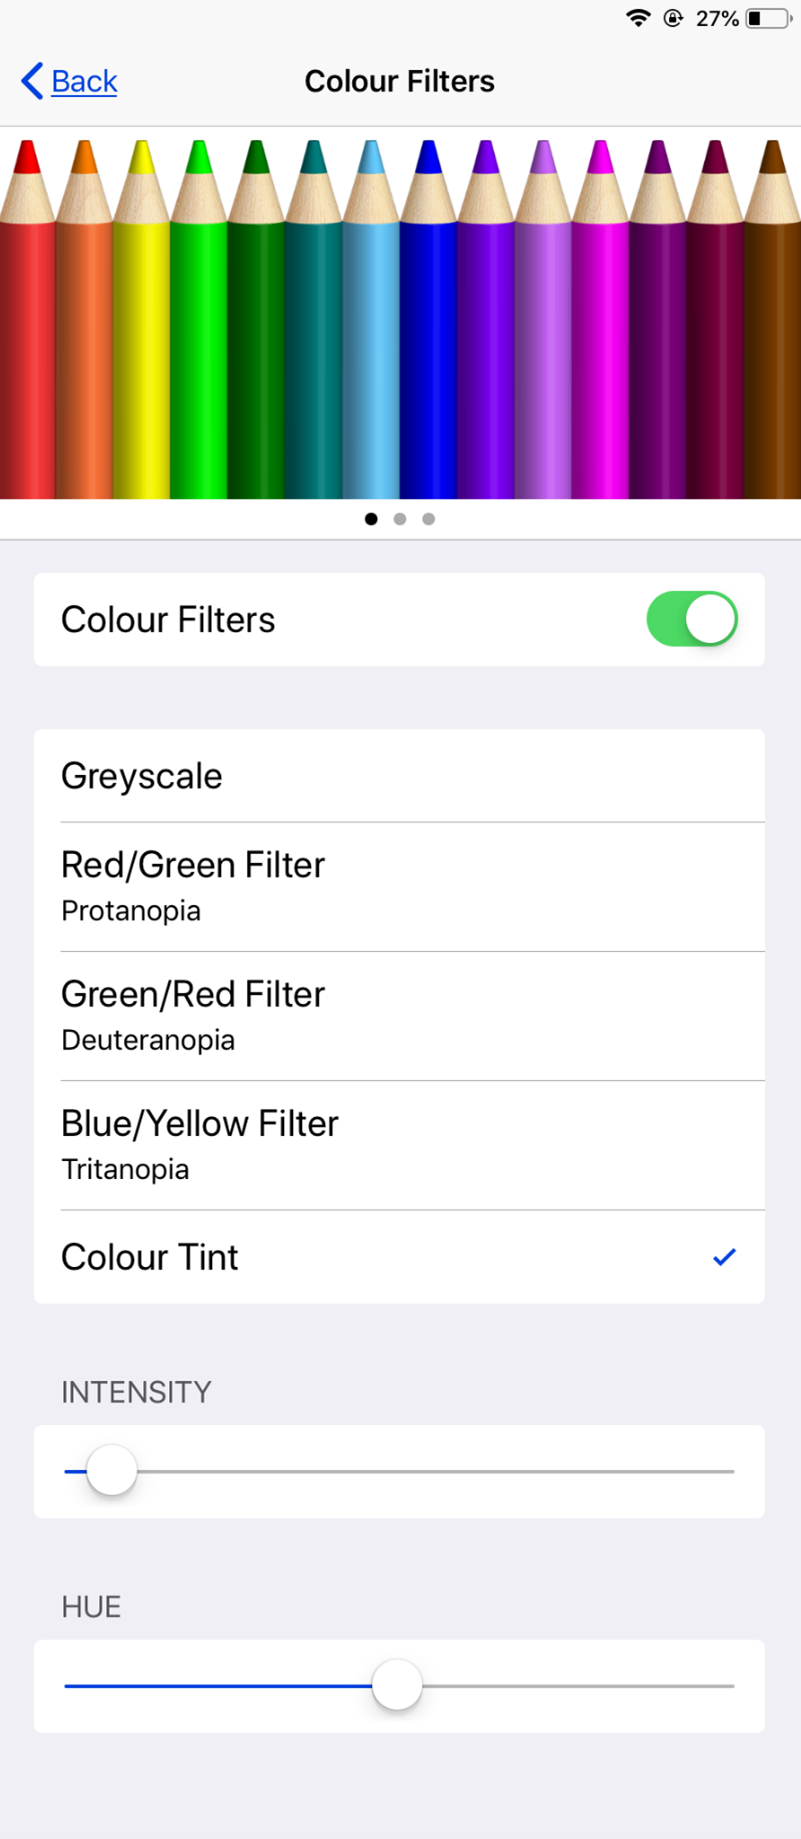 The colour filters settings shows pencils in a rainbow of colours, starting with red and yellow, and ending with purple and brown.